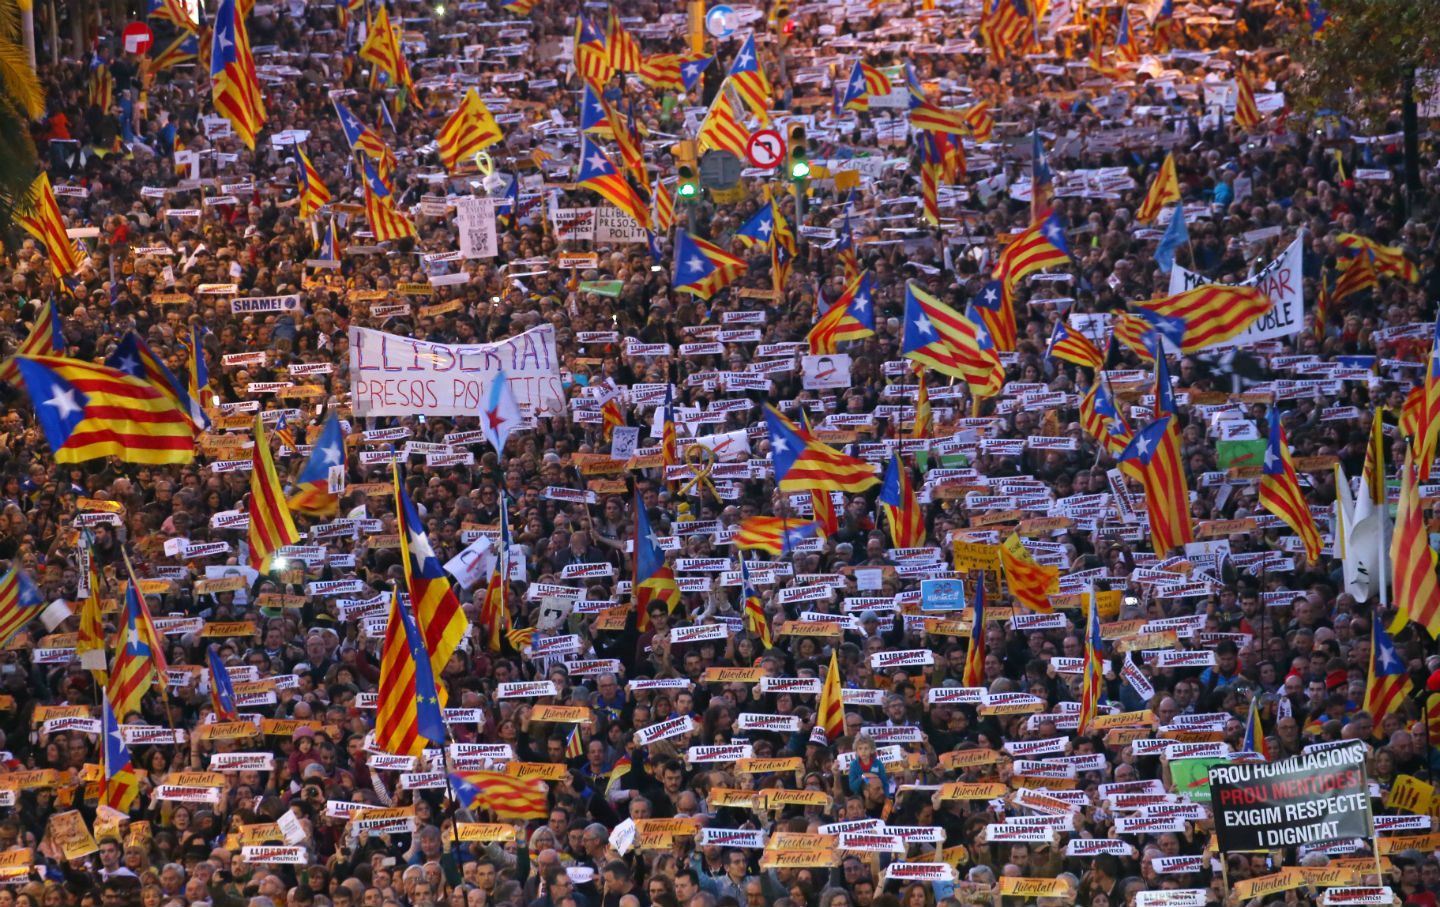 spain s conflict over catalonia is covering up massive political